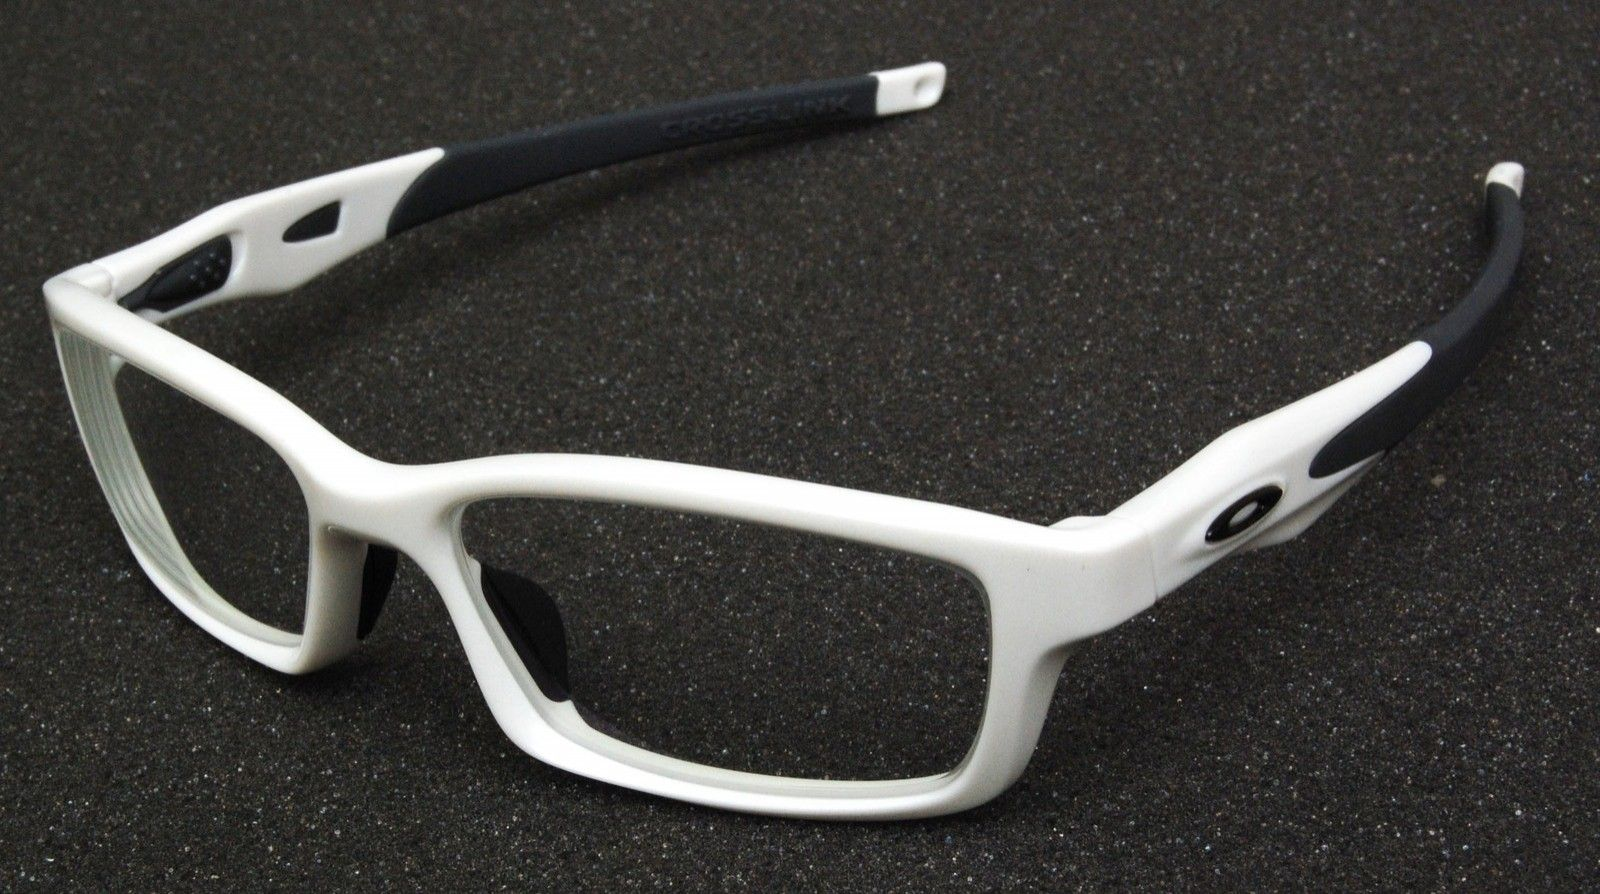 Oakley Crosslink OX8027-0453 Pearl White / Grey Rx Prescription - 01.jpg